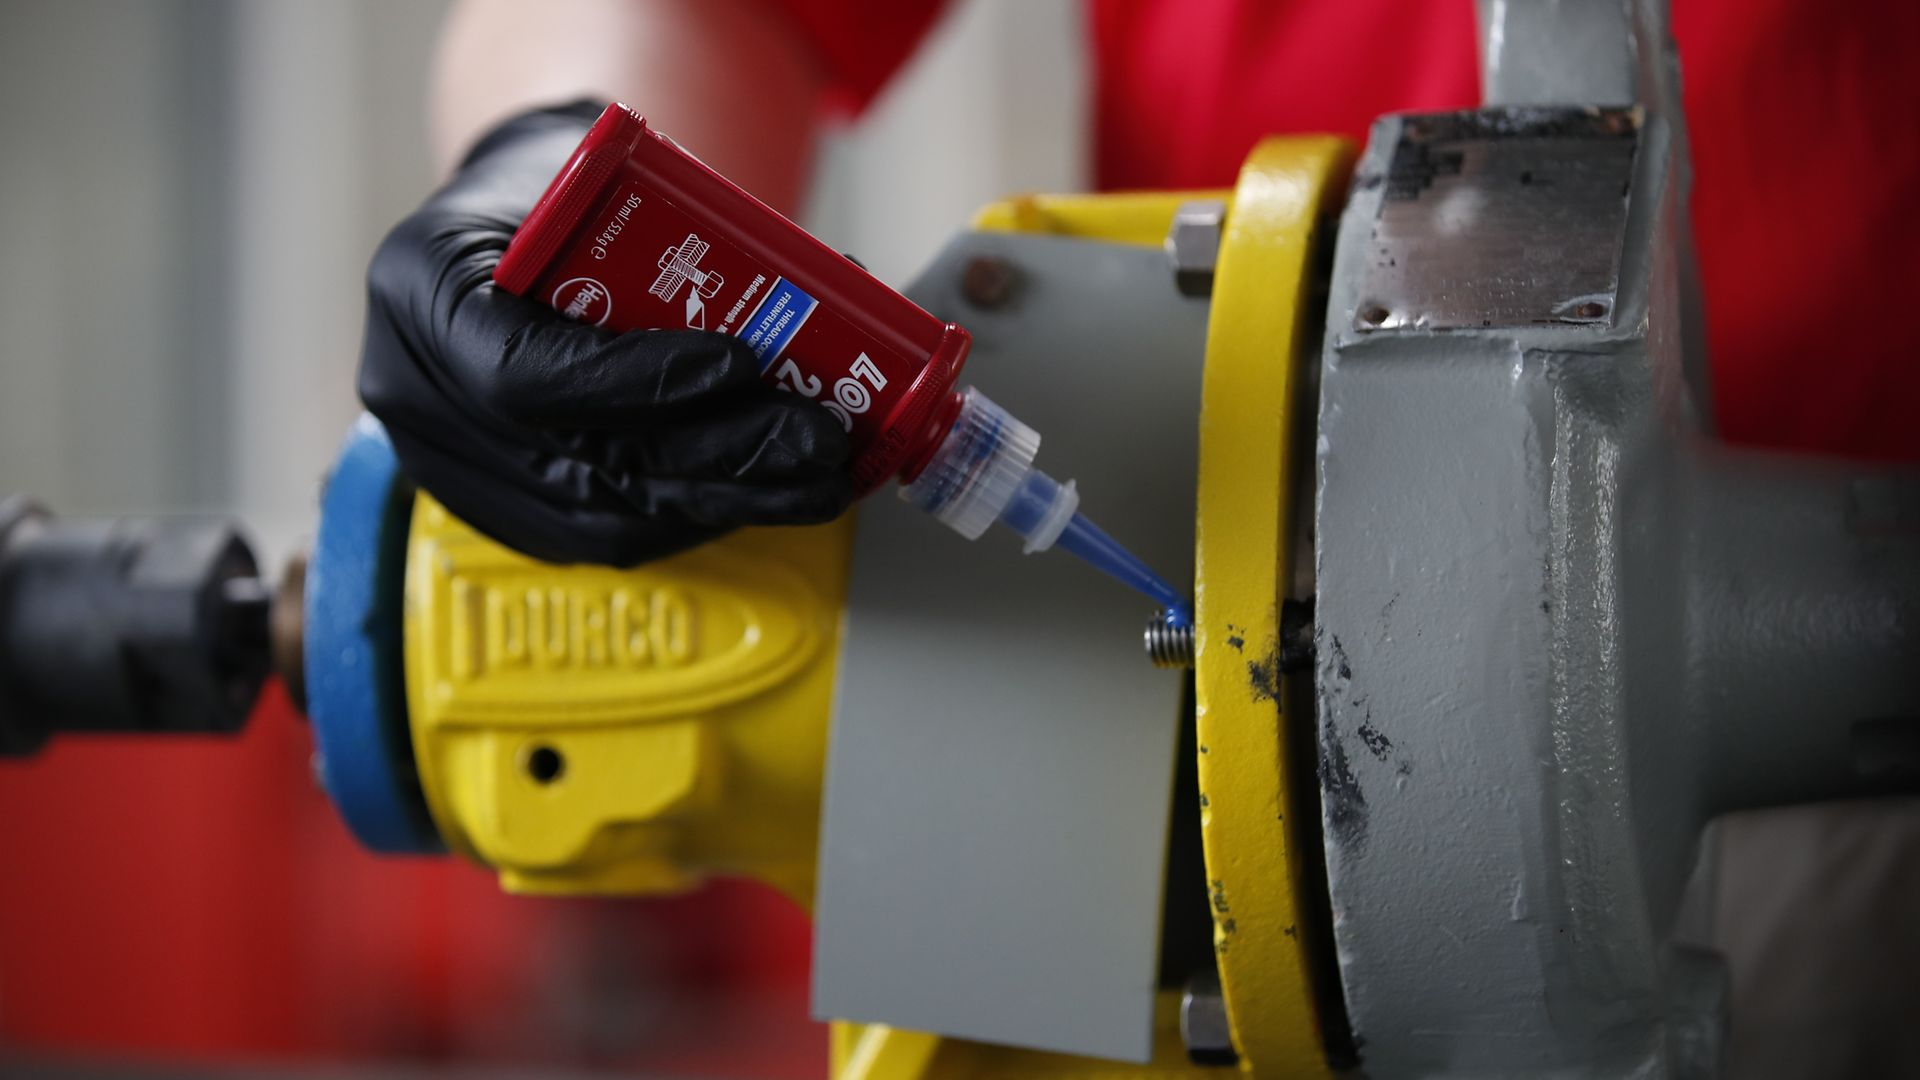 Some of Loctite's best-known adhesive solutions are threadlockers, which prevent screws and bolts from loosening.